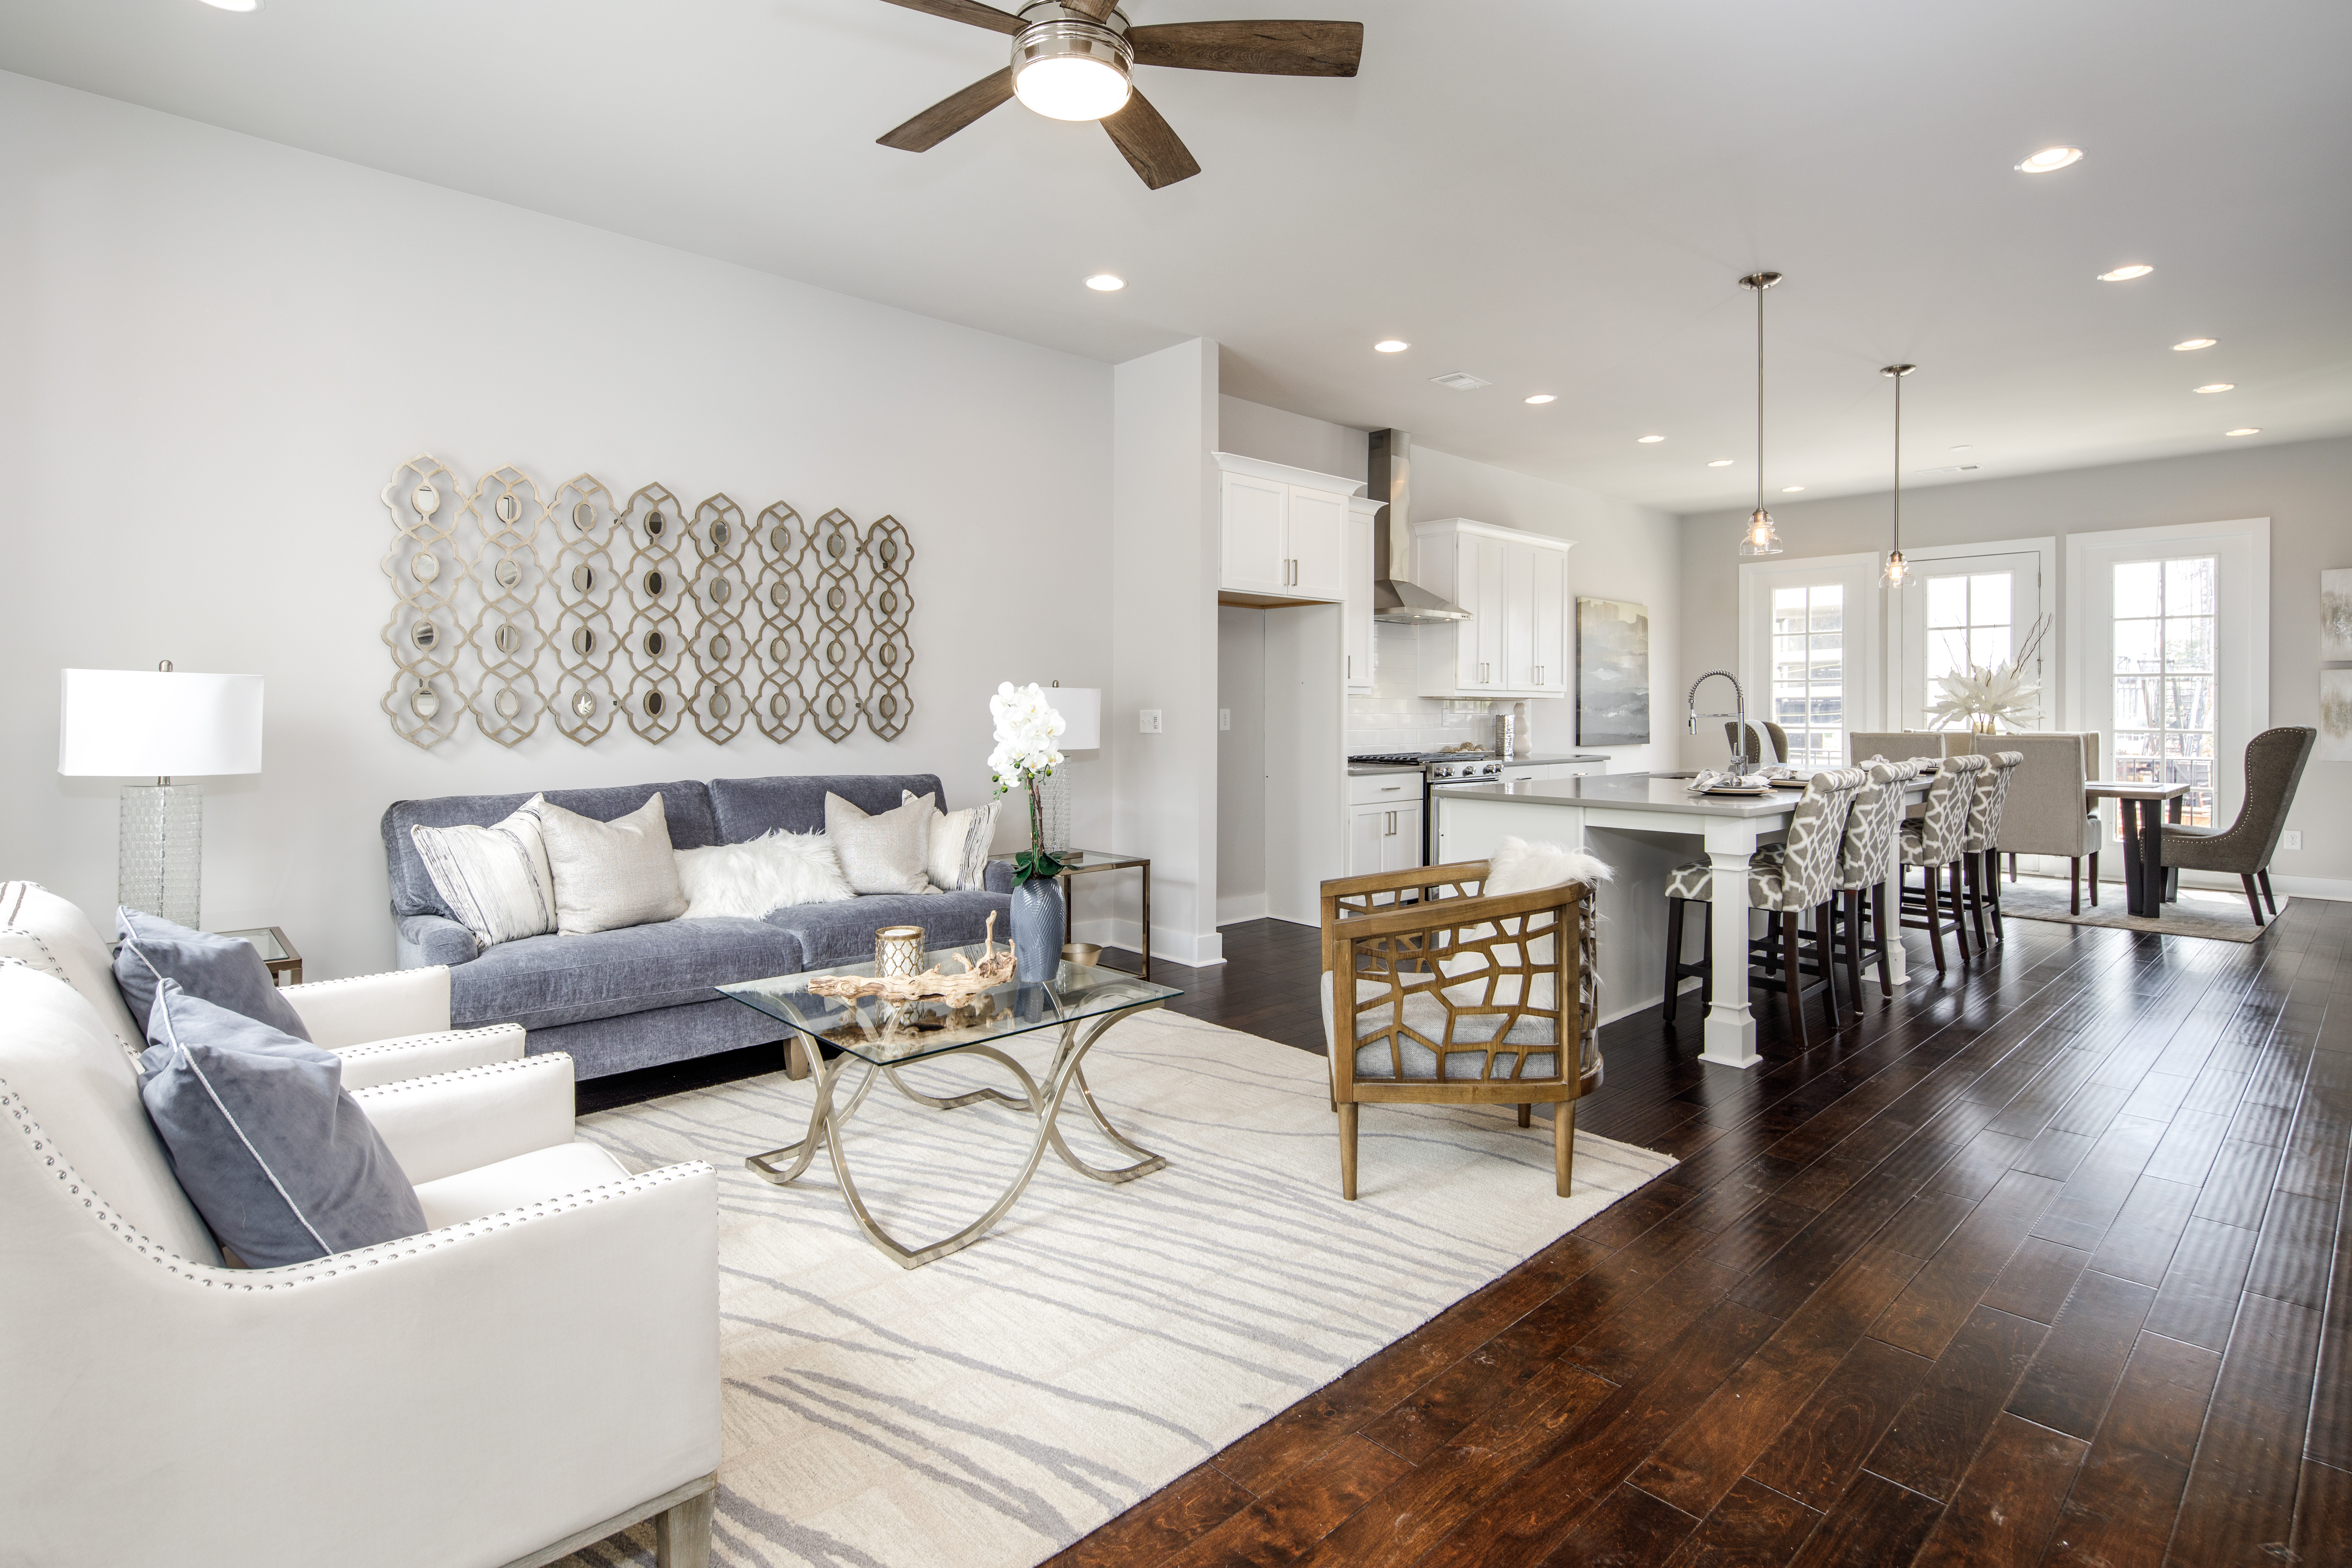 Tour our open concept townhomes during the Summer Move In Special